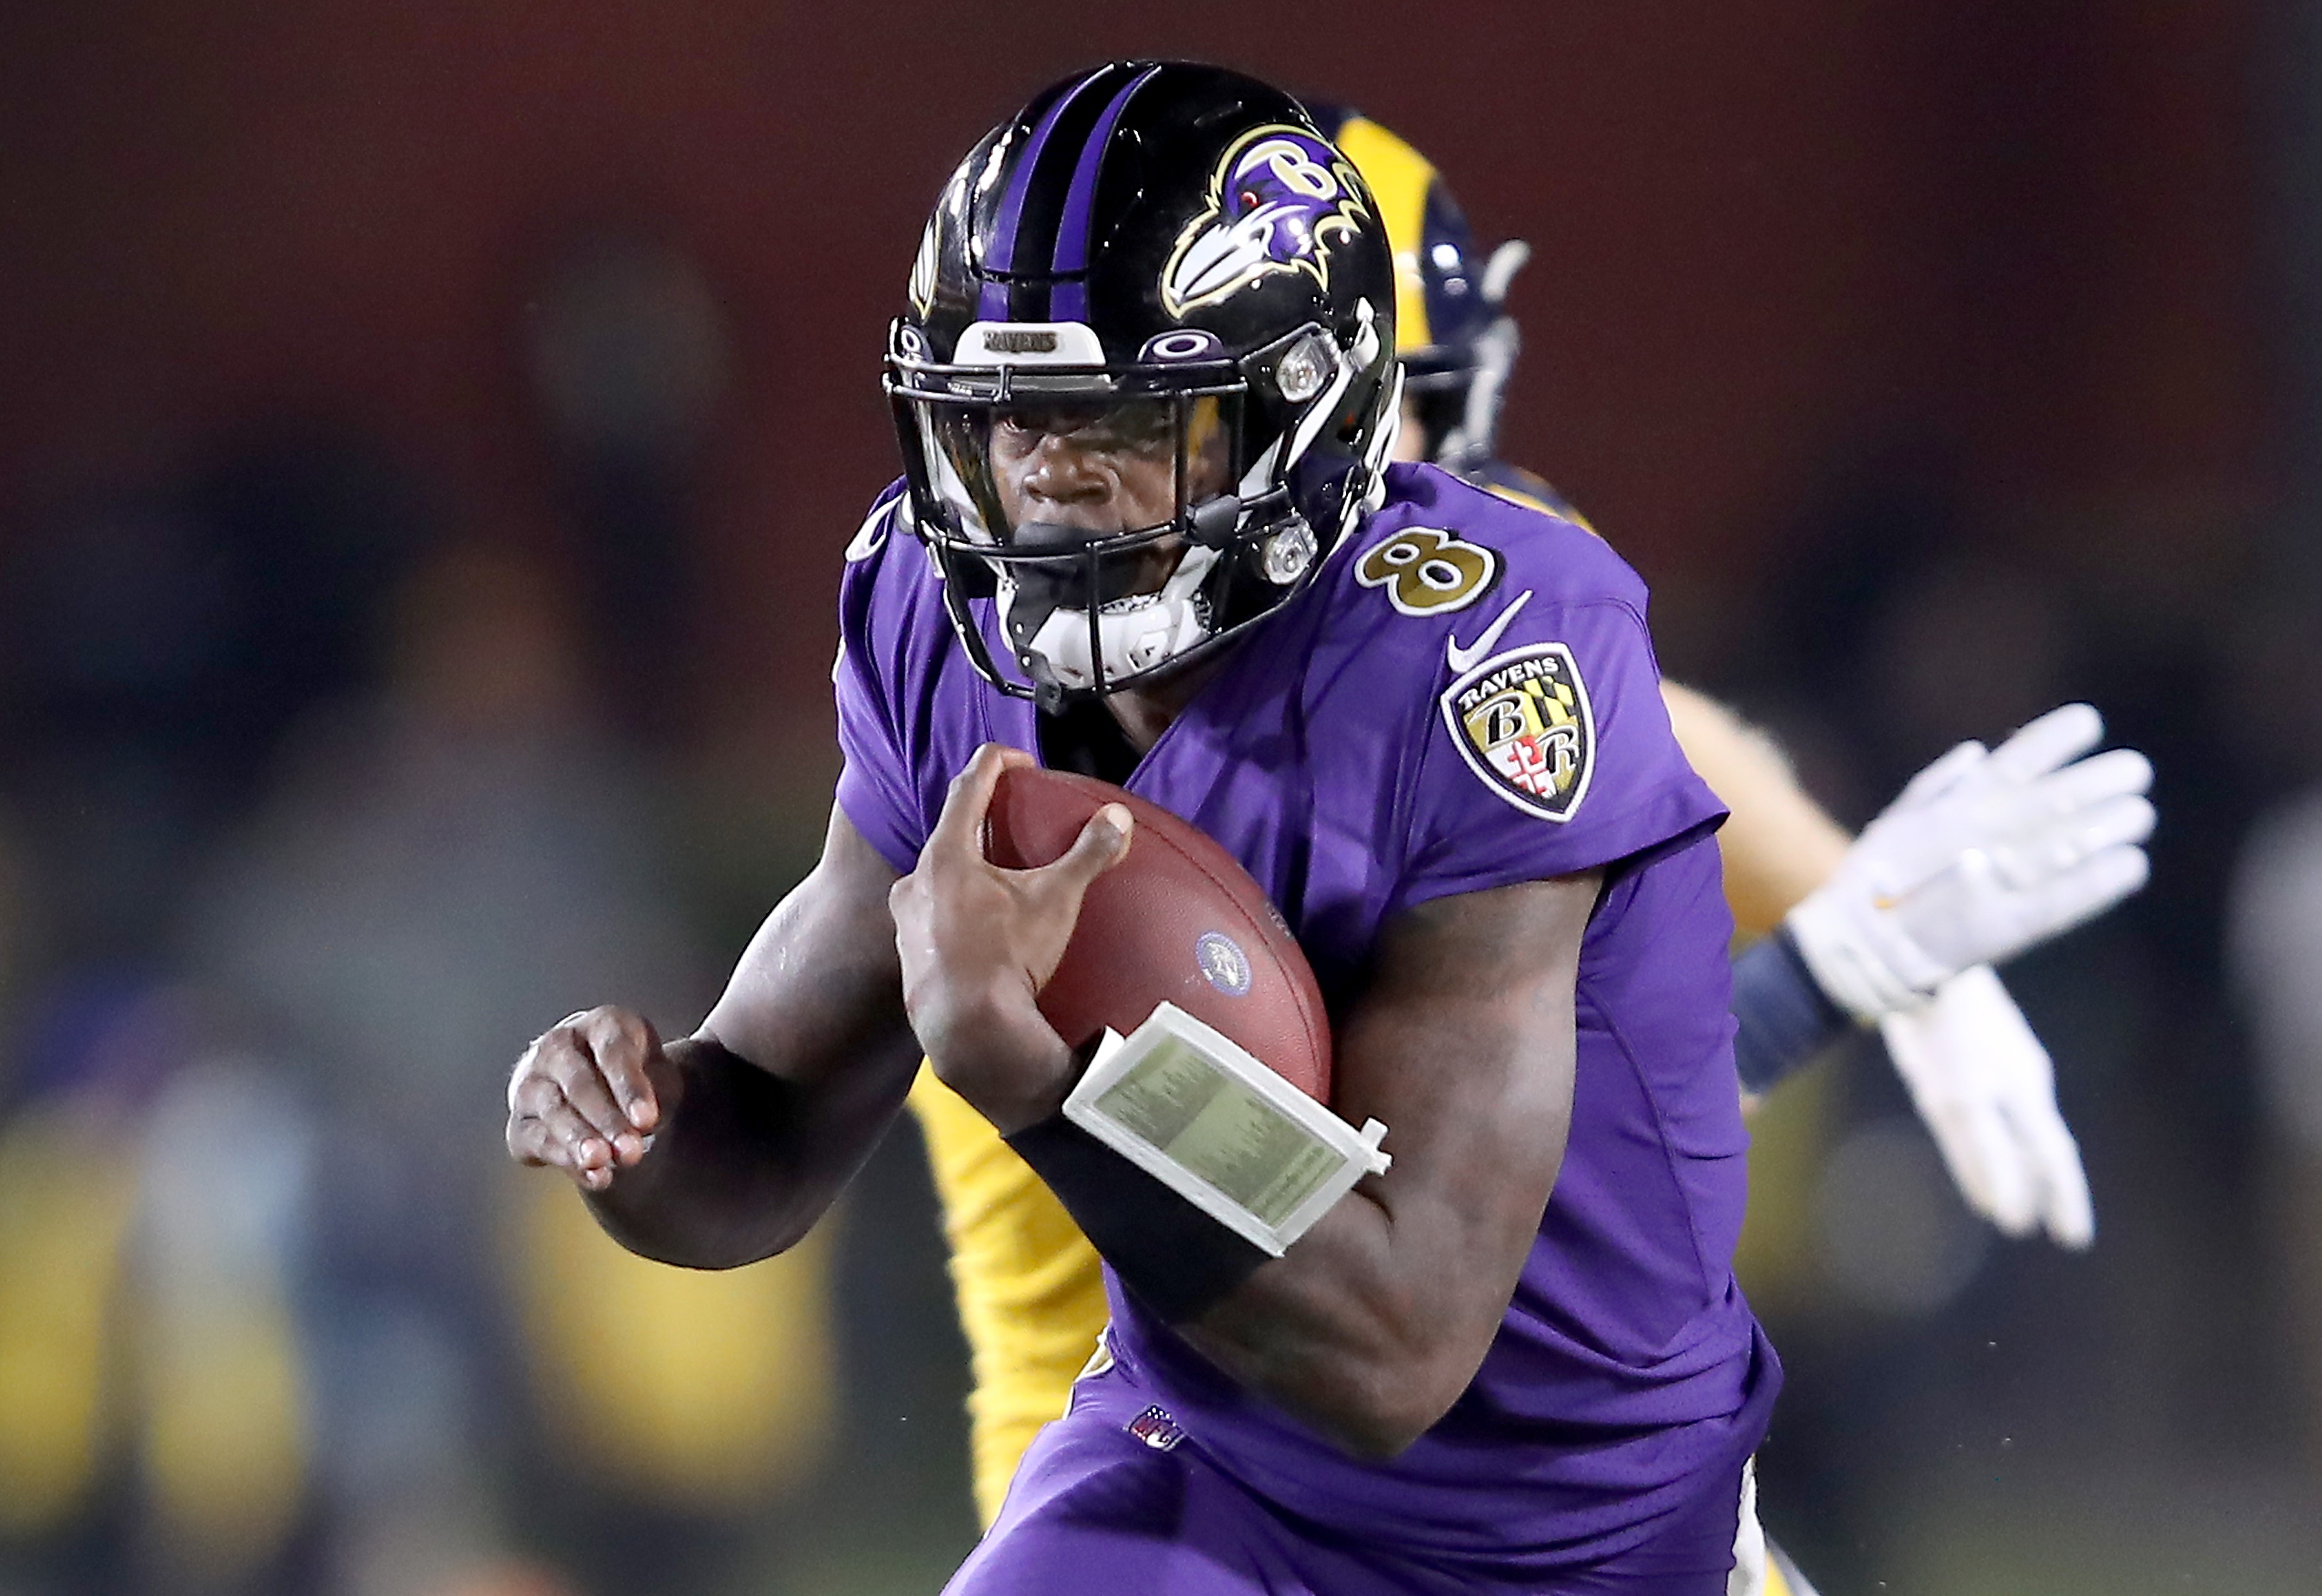 Quarterback Lamar Jackson of the Baltimore Ravens had a phenomenal game against the Rams. (Photo by Sean M. Haffey/Getty Images)